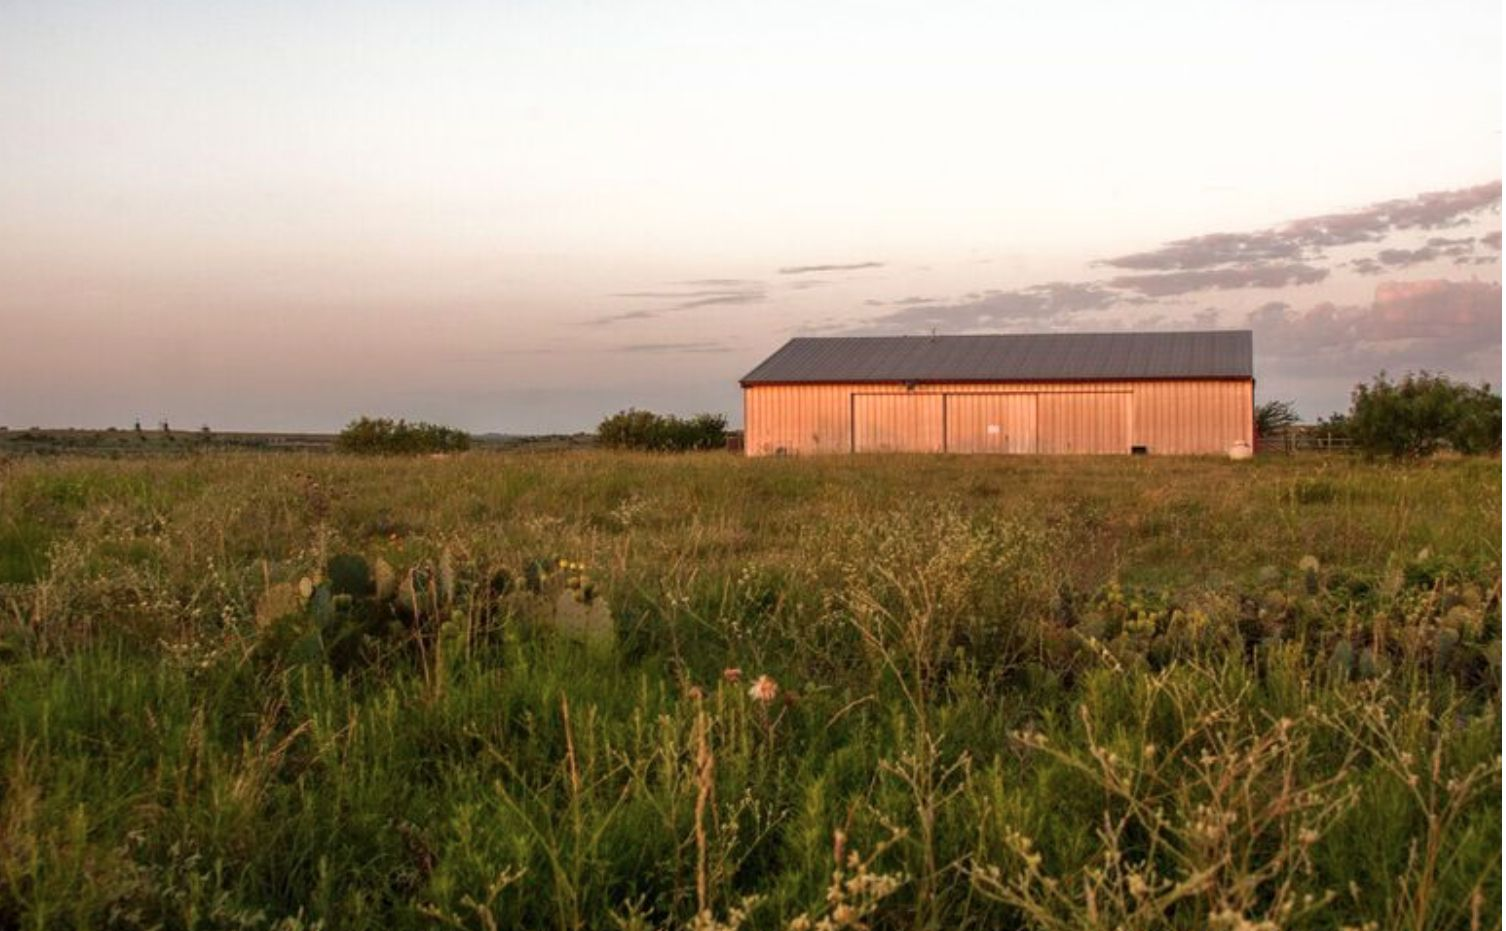 The Bear Creek Ranch includes a metal pavilion with an apartment.